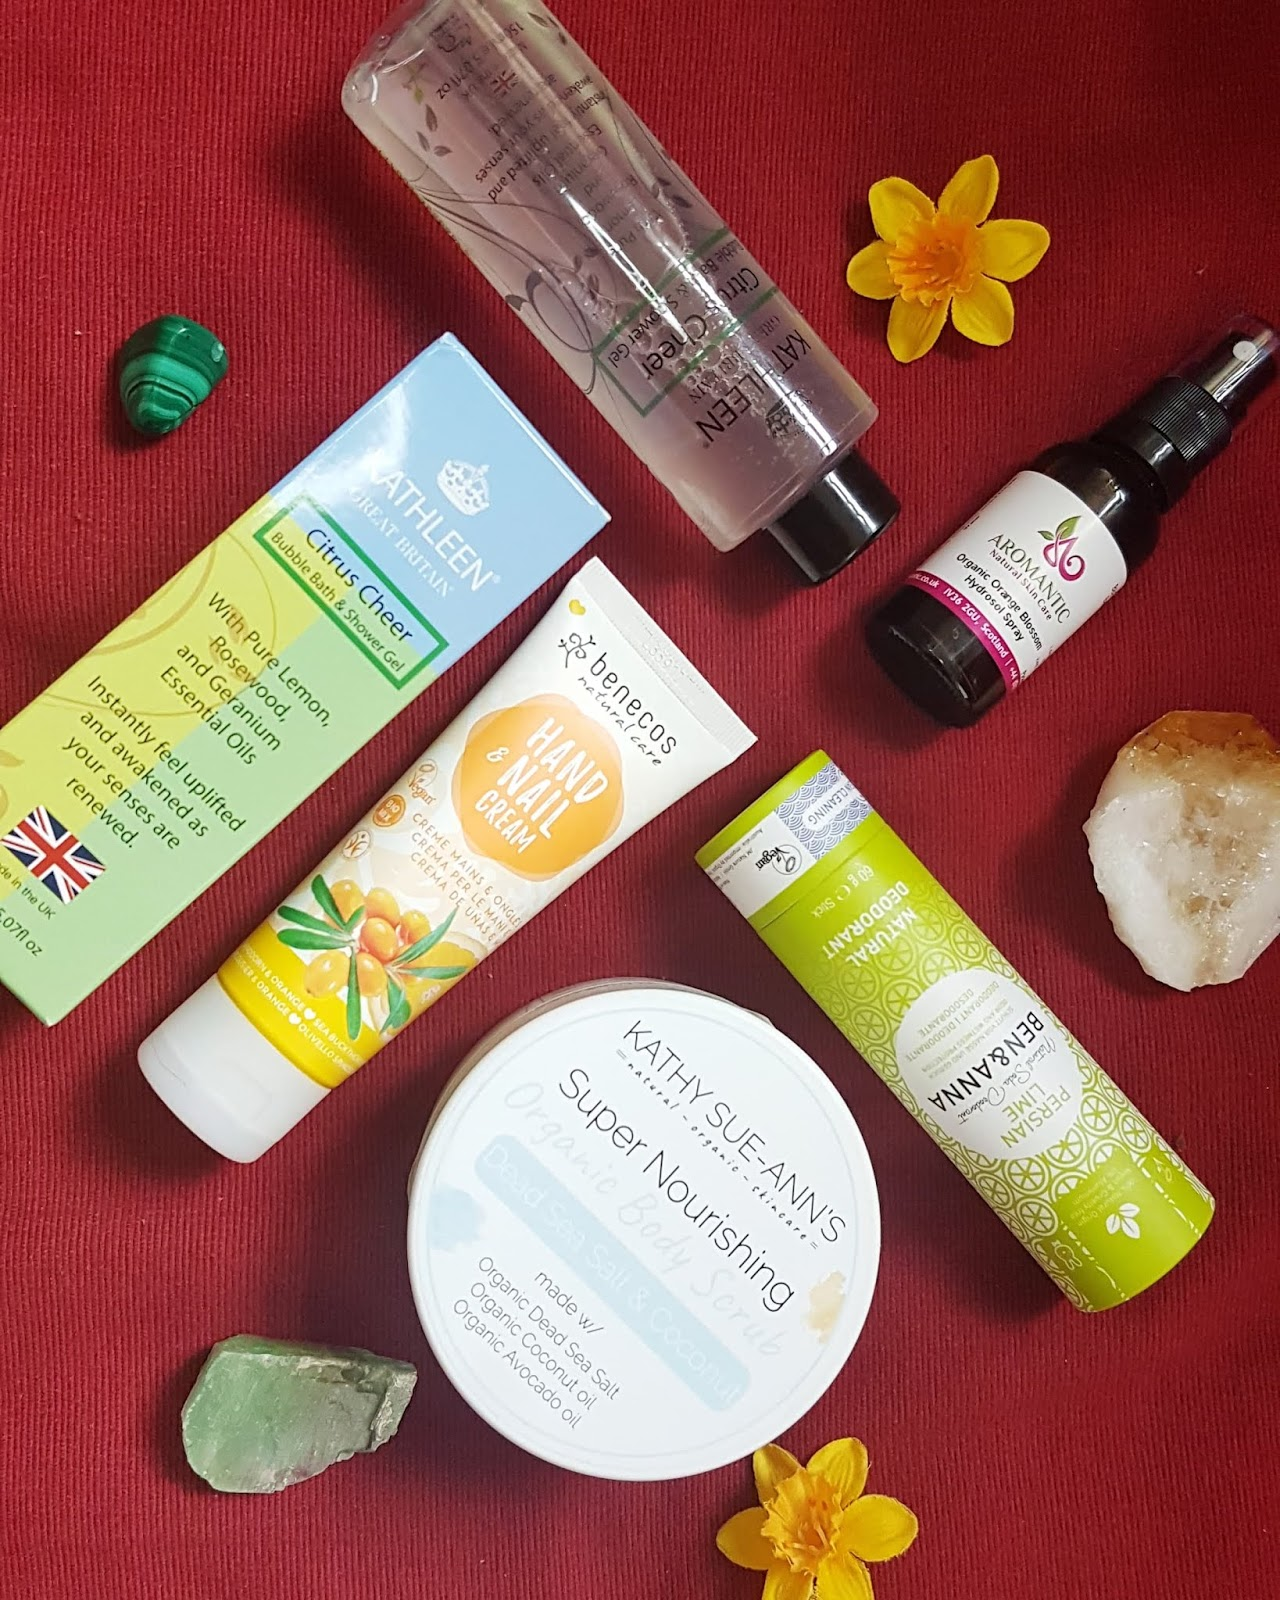 The Natural Beauty Box Review - Fresh & Fruity